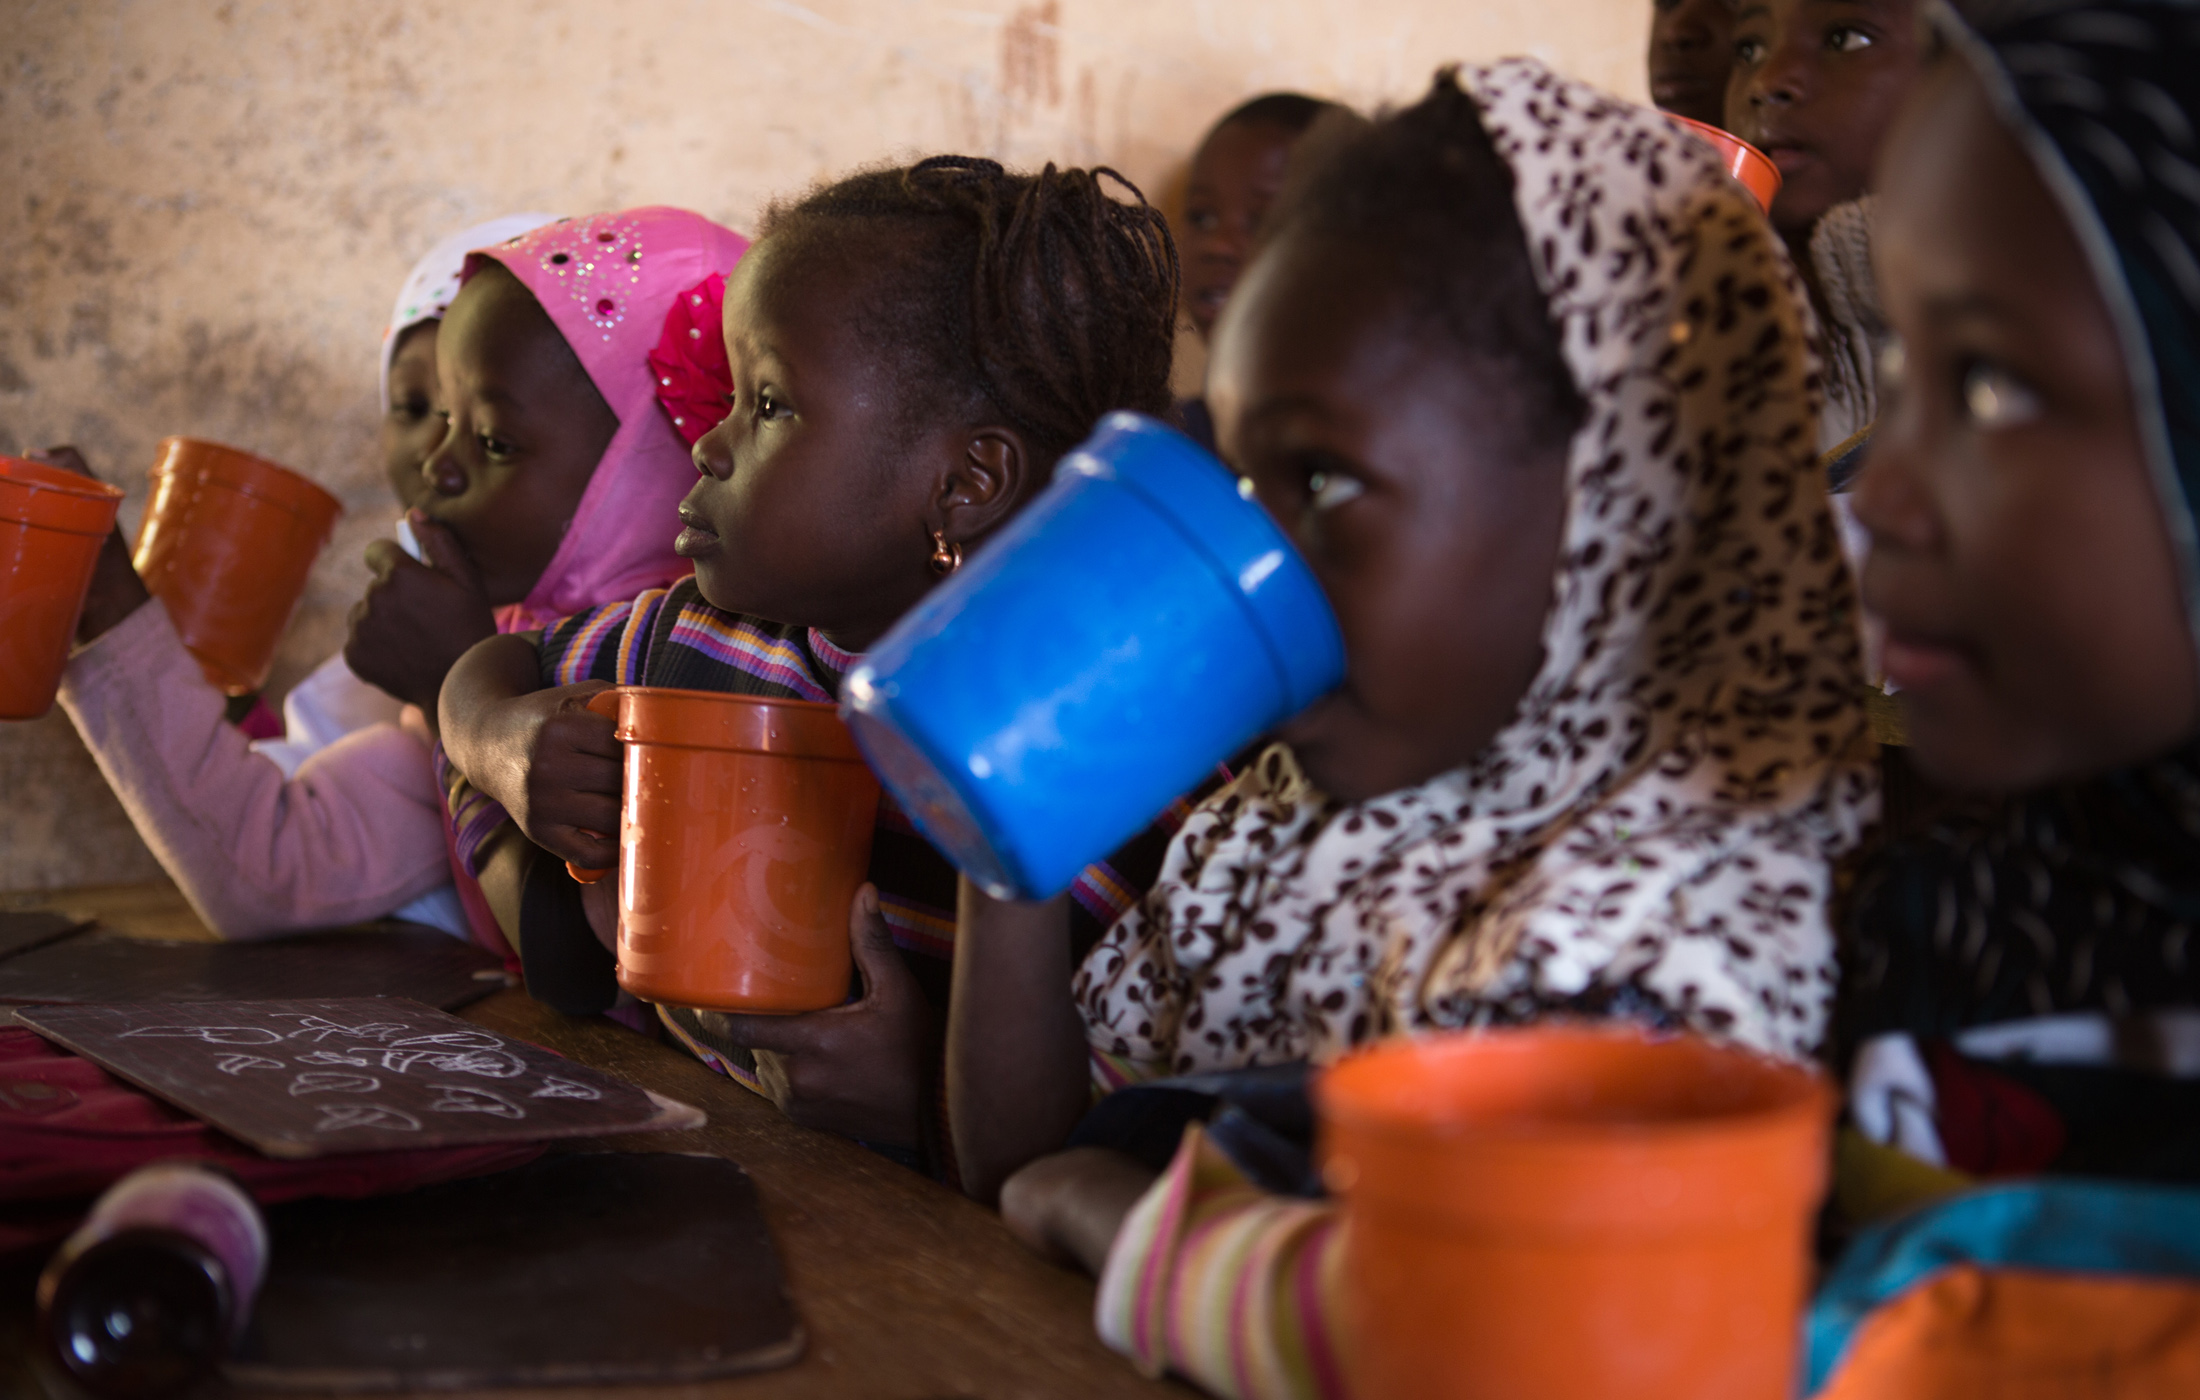 Students eat their first meal of the day in their classroom in Gao, Mali. The World Food Program provides two meals a day to schools in Gao and other conflict-affected cities in northern Mali, such as Timbuktu. The emergency feeding program has seen a ris